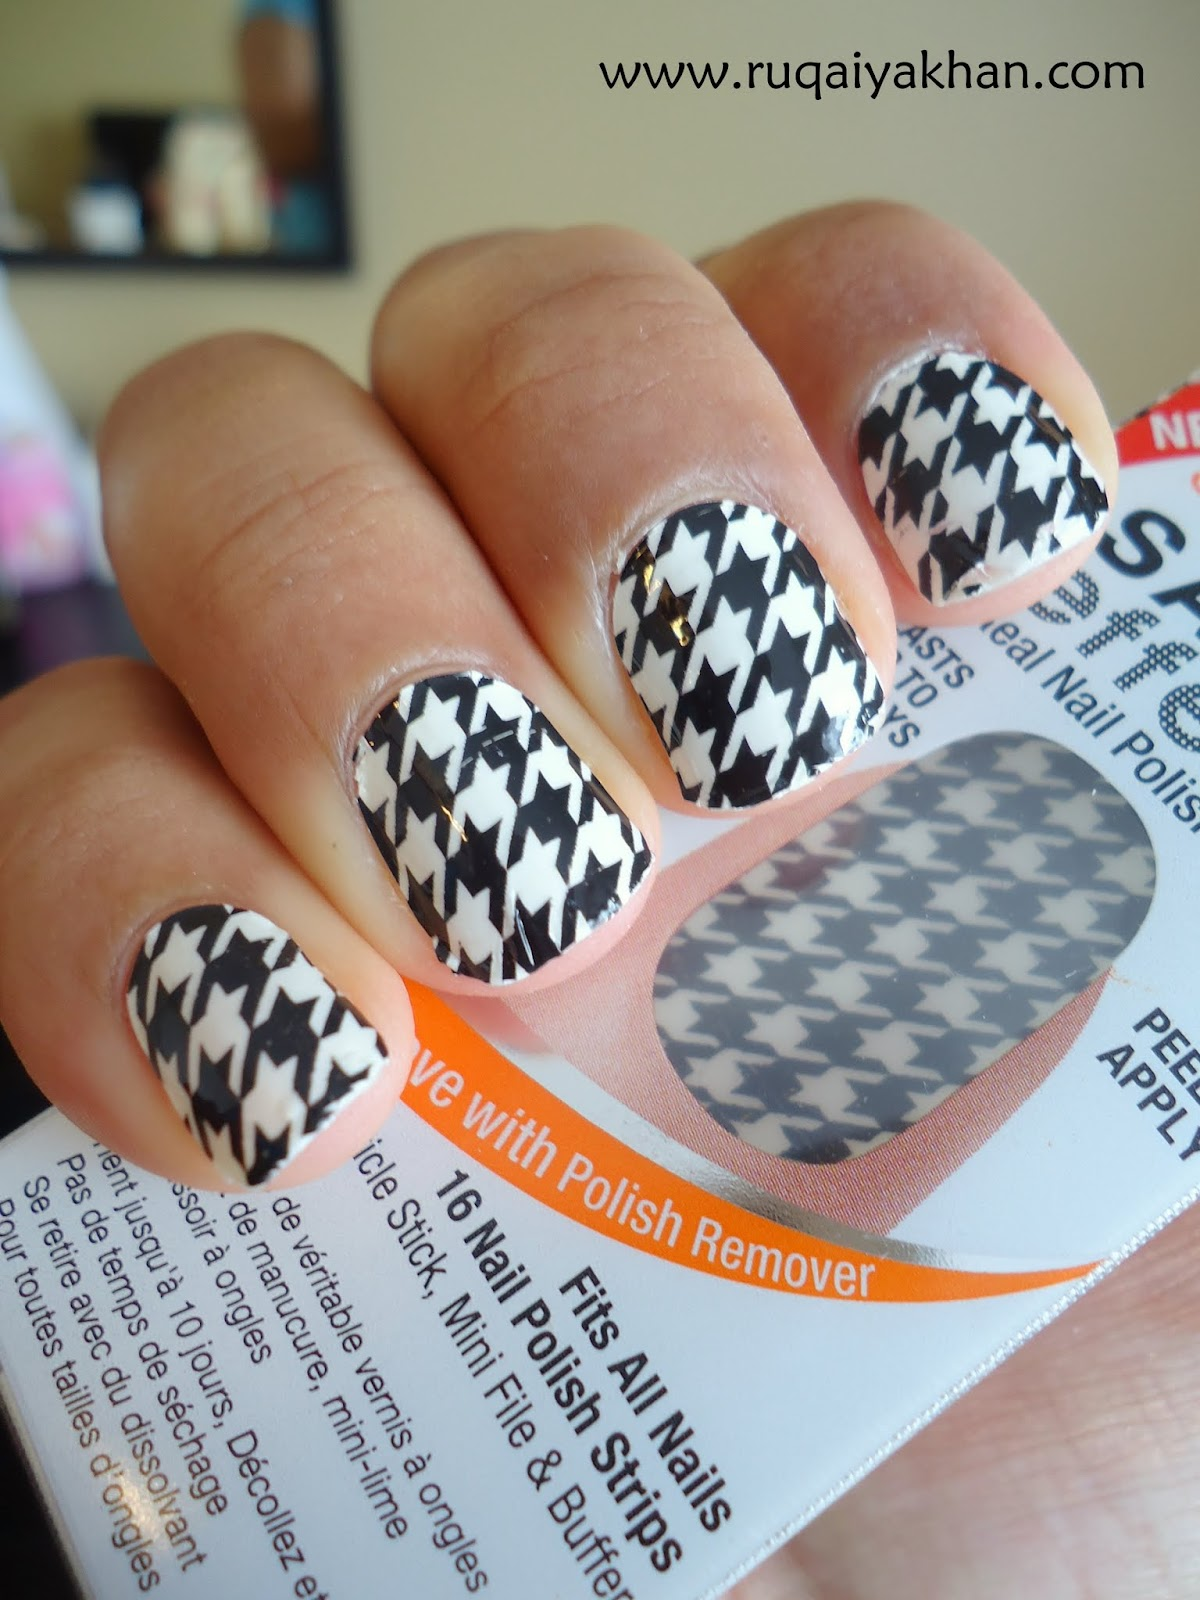 Continue Reading To Find Out More About The Nail Polish Strips Whats In Pack Lots Of Picy Experience With Them So Far